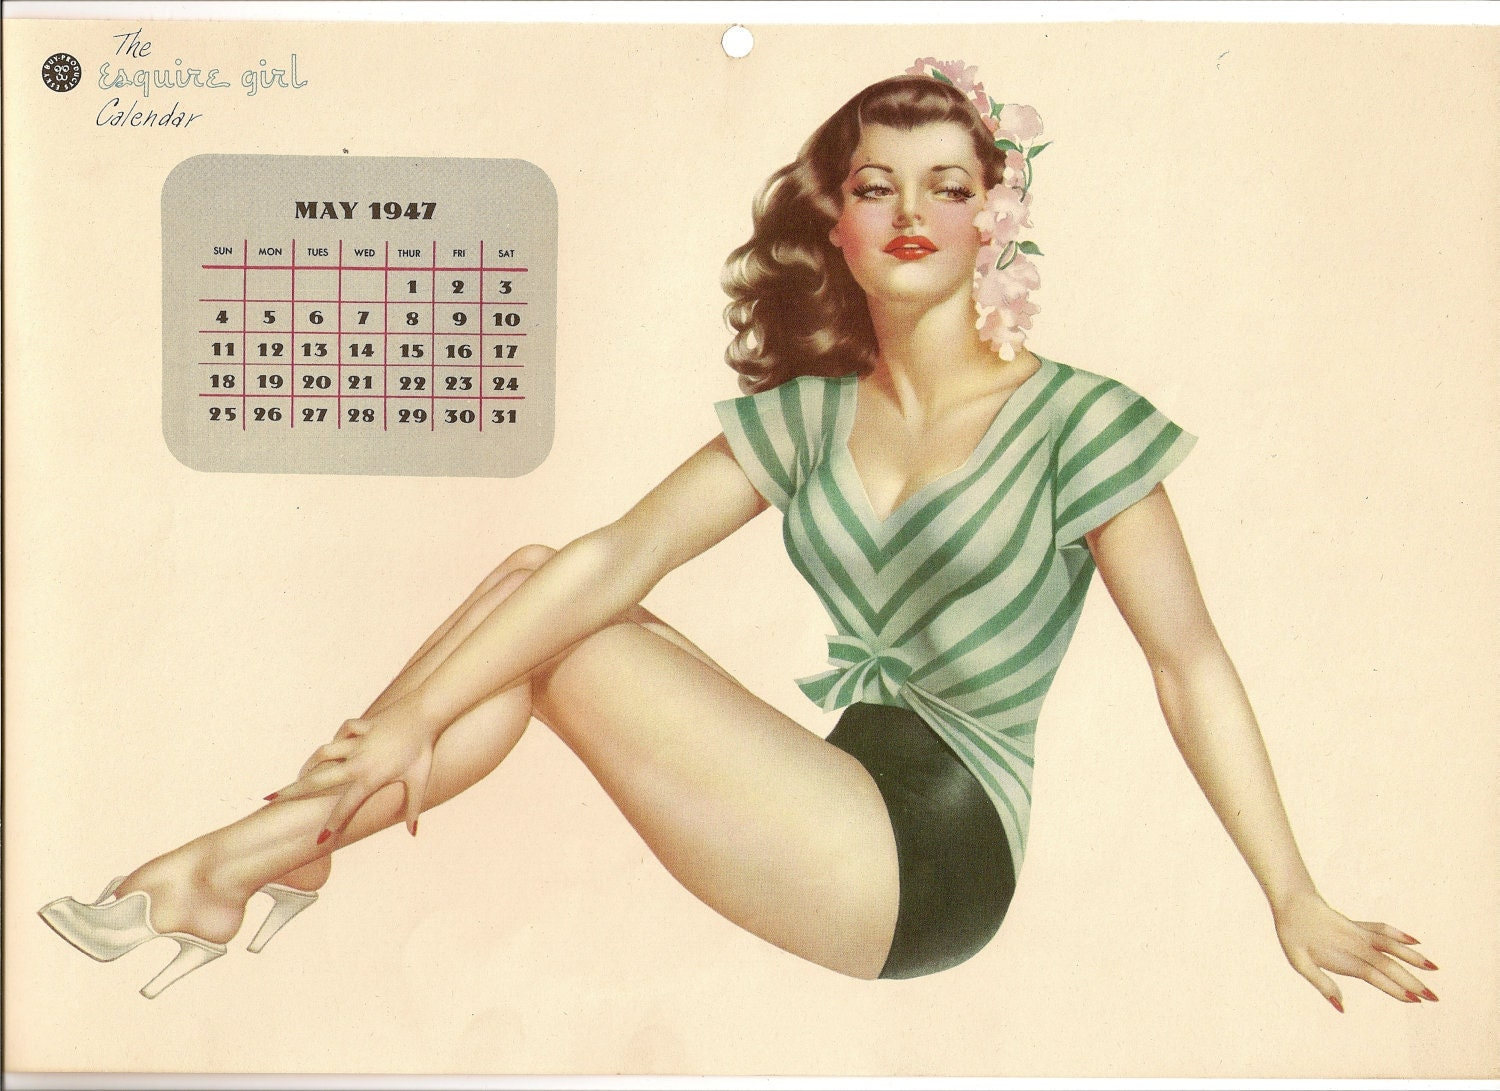 Calendar Girl May : May page esquire girl calendar pin up by pegi on etsy